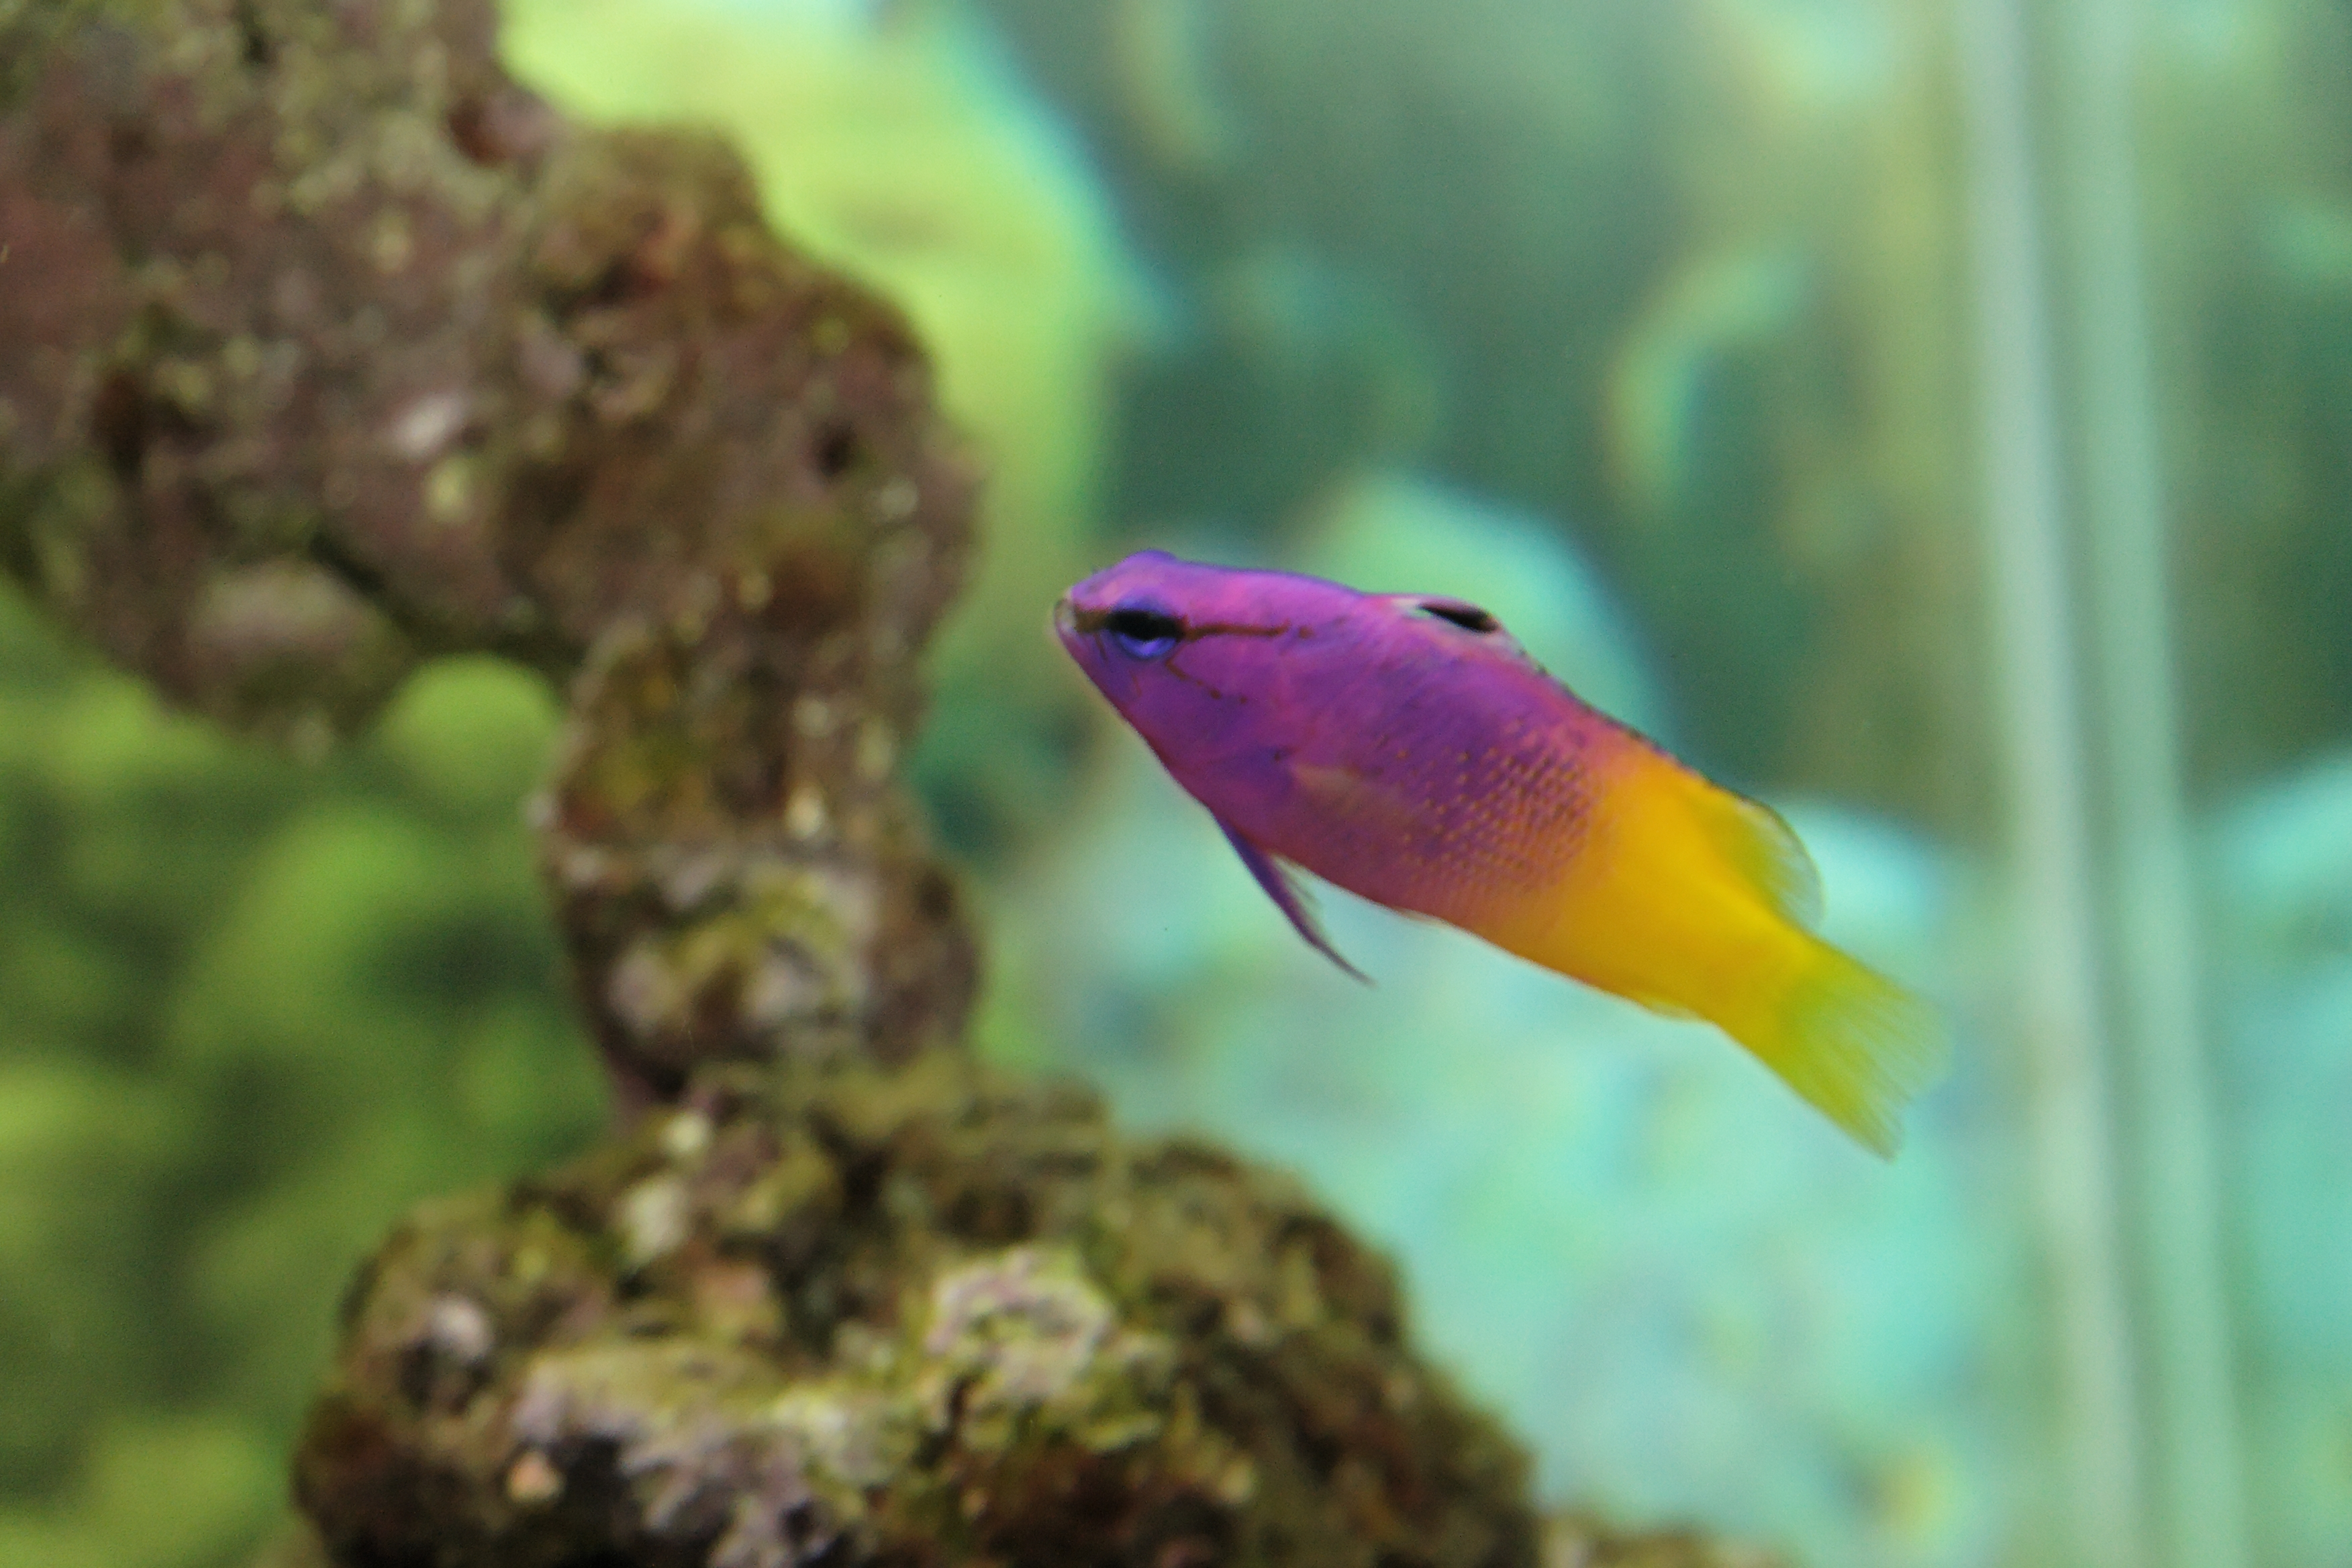 Pseudochromis paccagnellae (royal dottyback), Aquarium.jpg - Pseudochromis paccagnellae (royal dottyback)